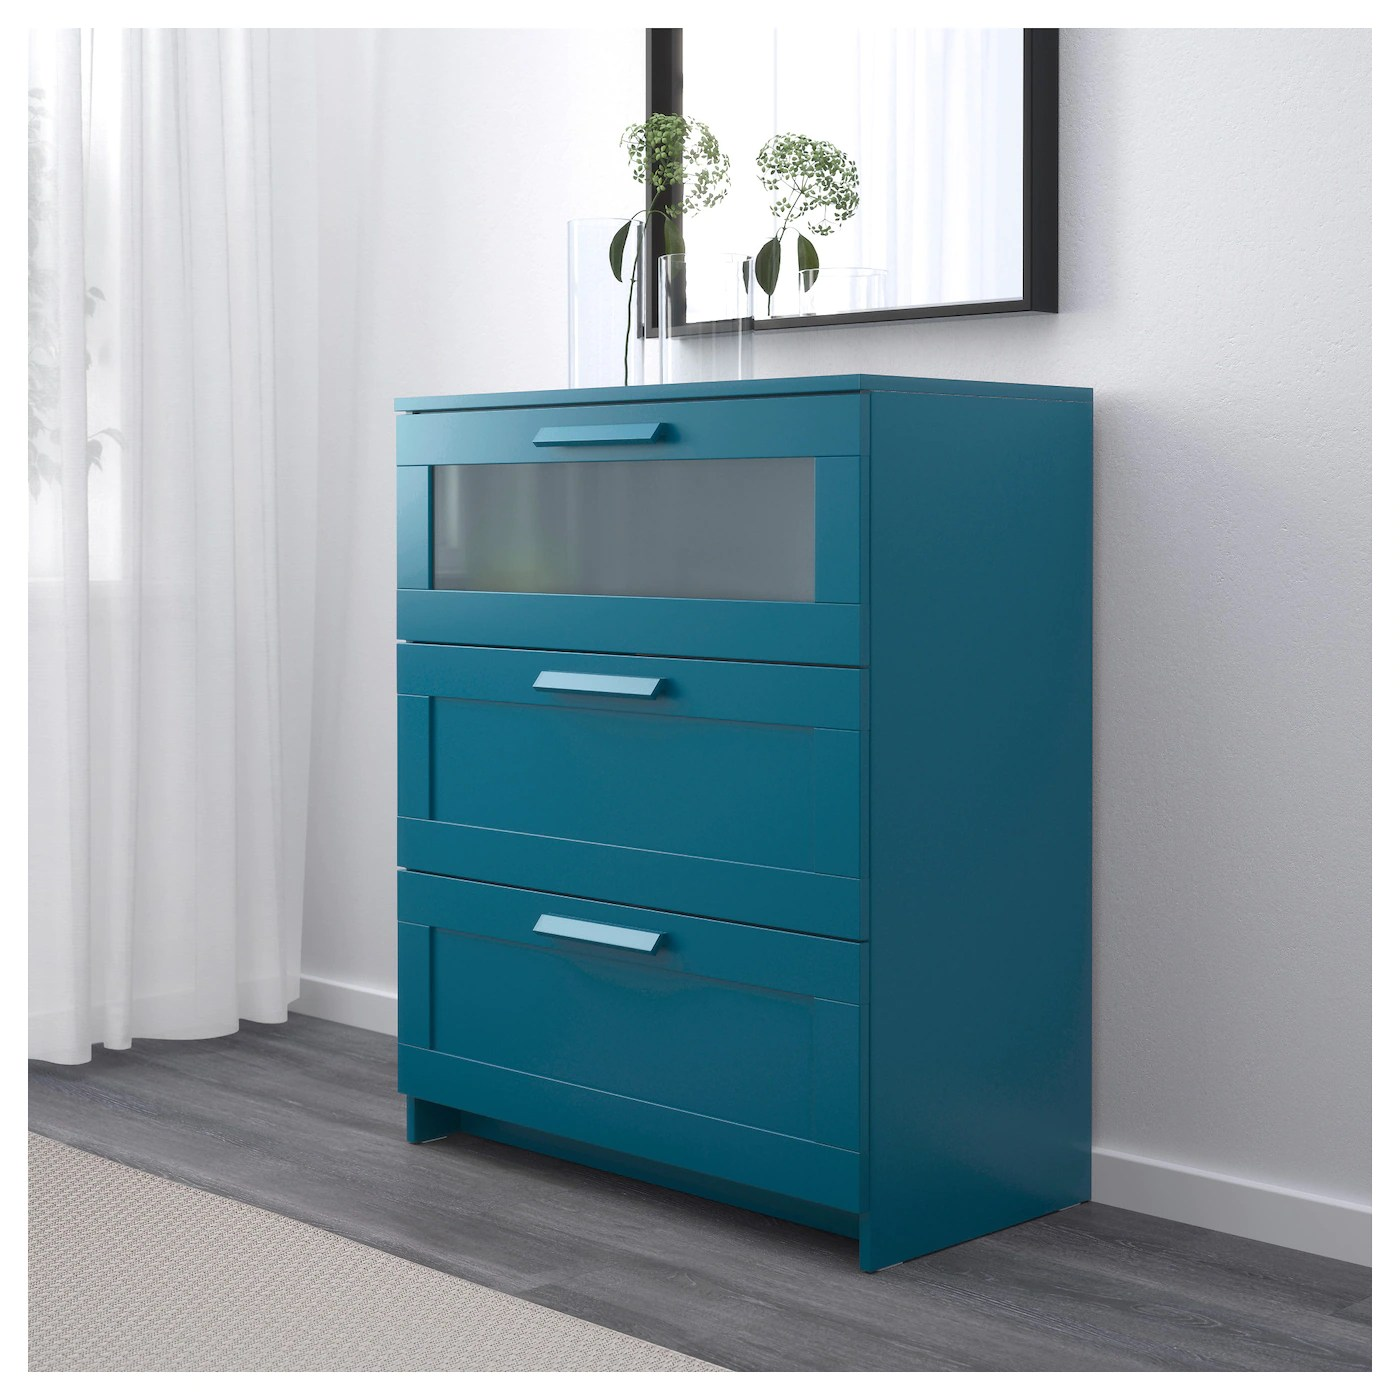 cf8c89ce2a4a Brimnes Chest Of 3 Drawers Dark Green-blue/frosted Glass